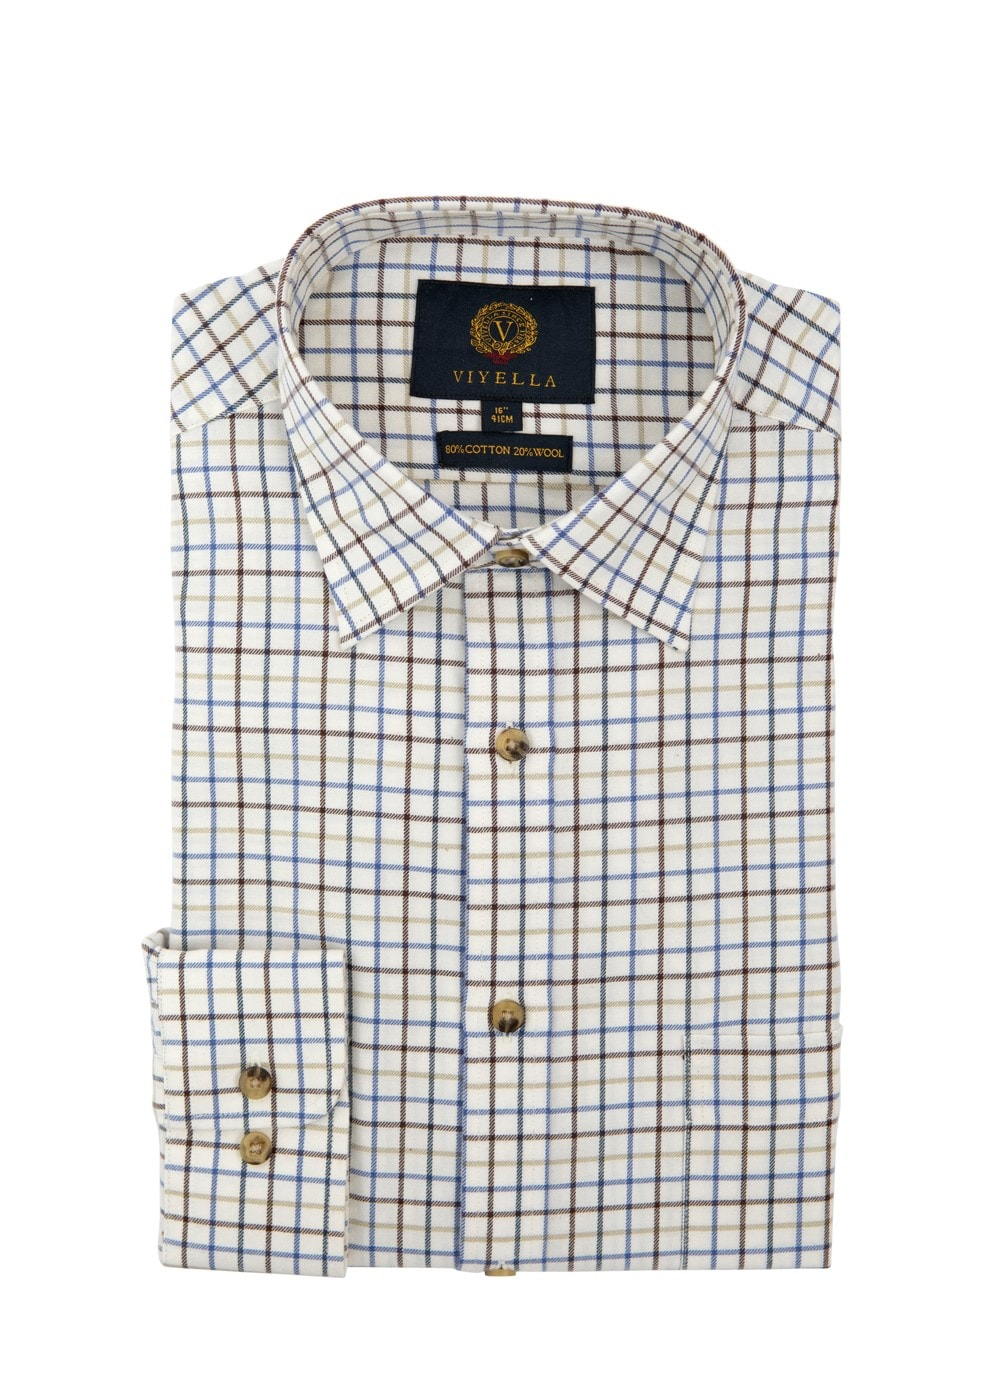 Viyella Medium Tattersall Shirt Mens From A Hume Uk